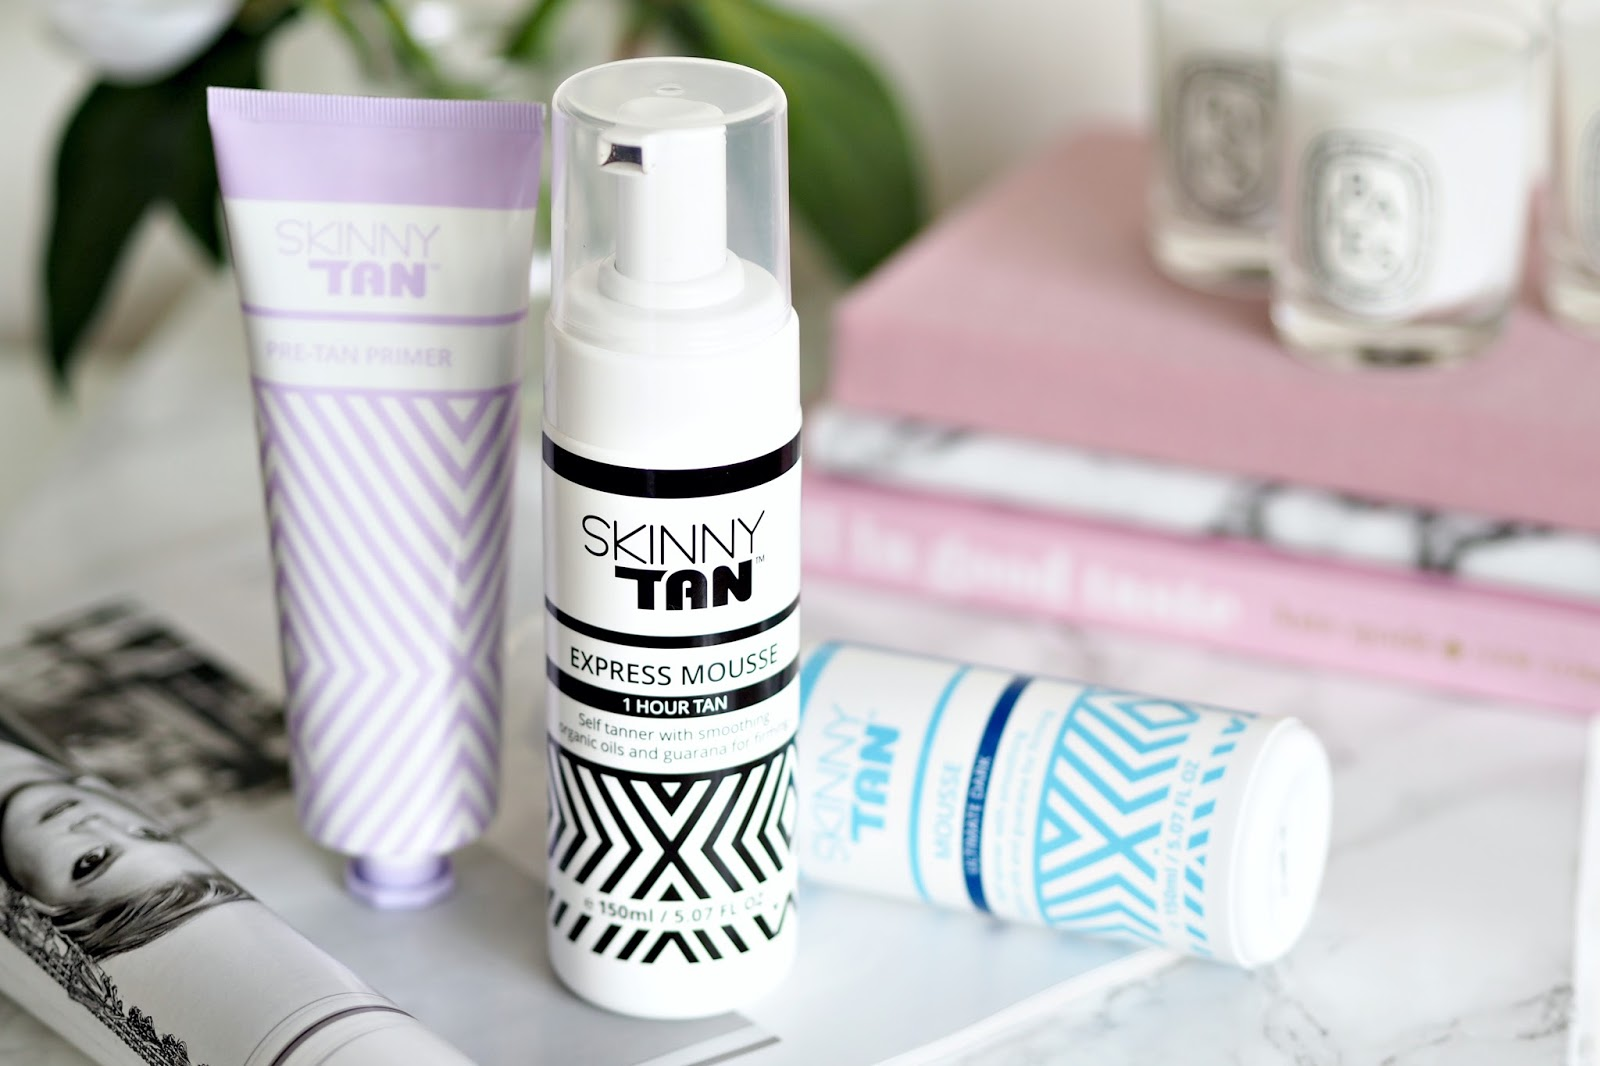 Skinny Tan fake tan review